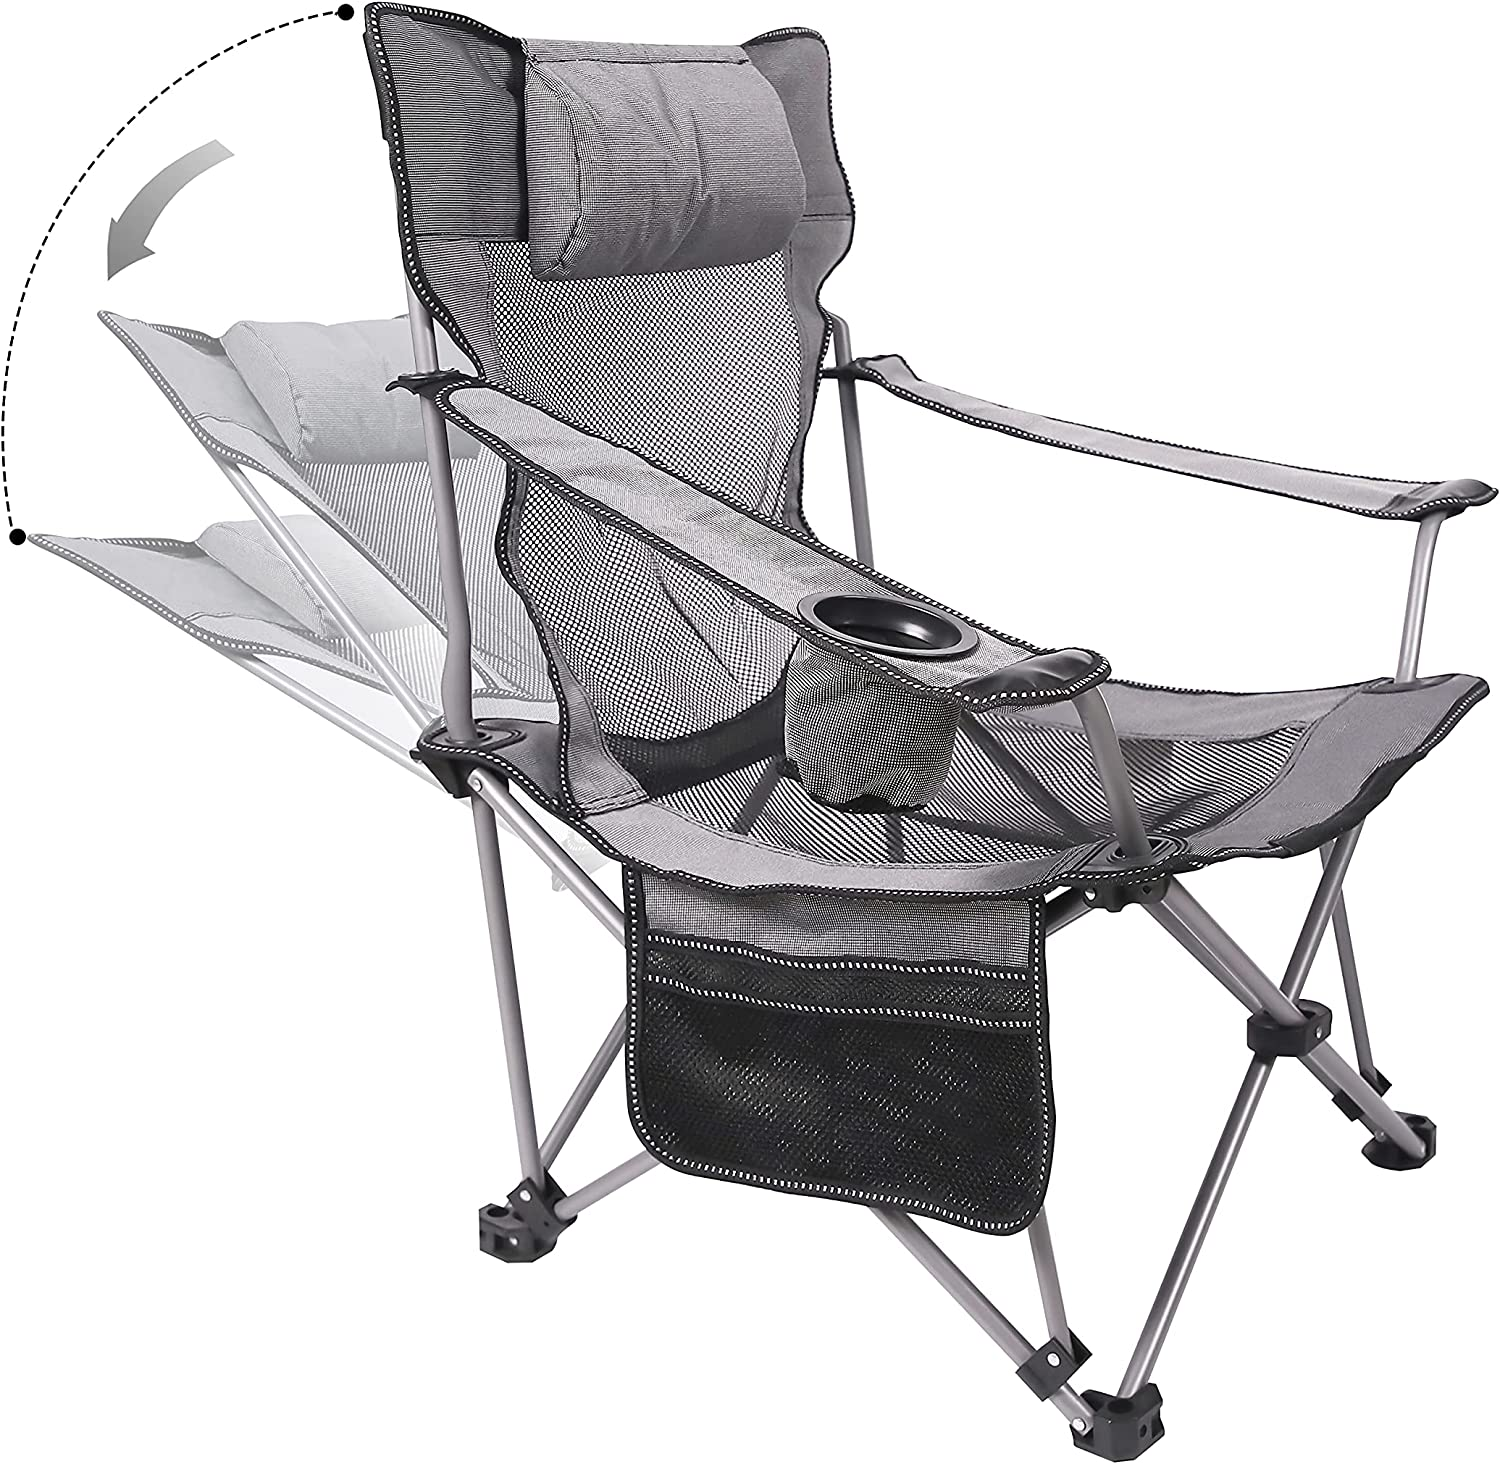 Phiroop Folding Camping Chair Adjustable Lounge Recliner Portable Oversized Steel Frame Collapsible Lawn Outdoor Chair with Cup Holder & Pillow (Dark Gray)